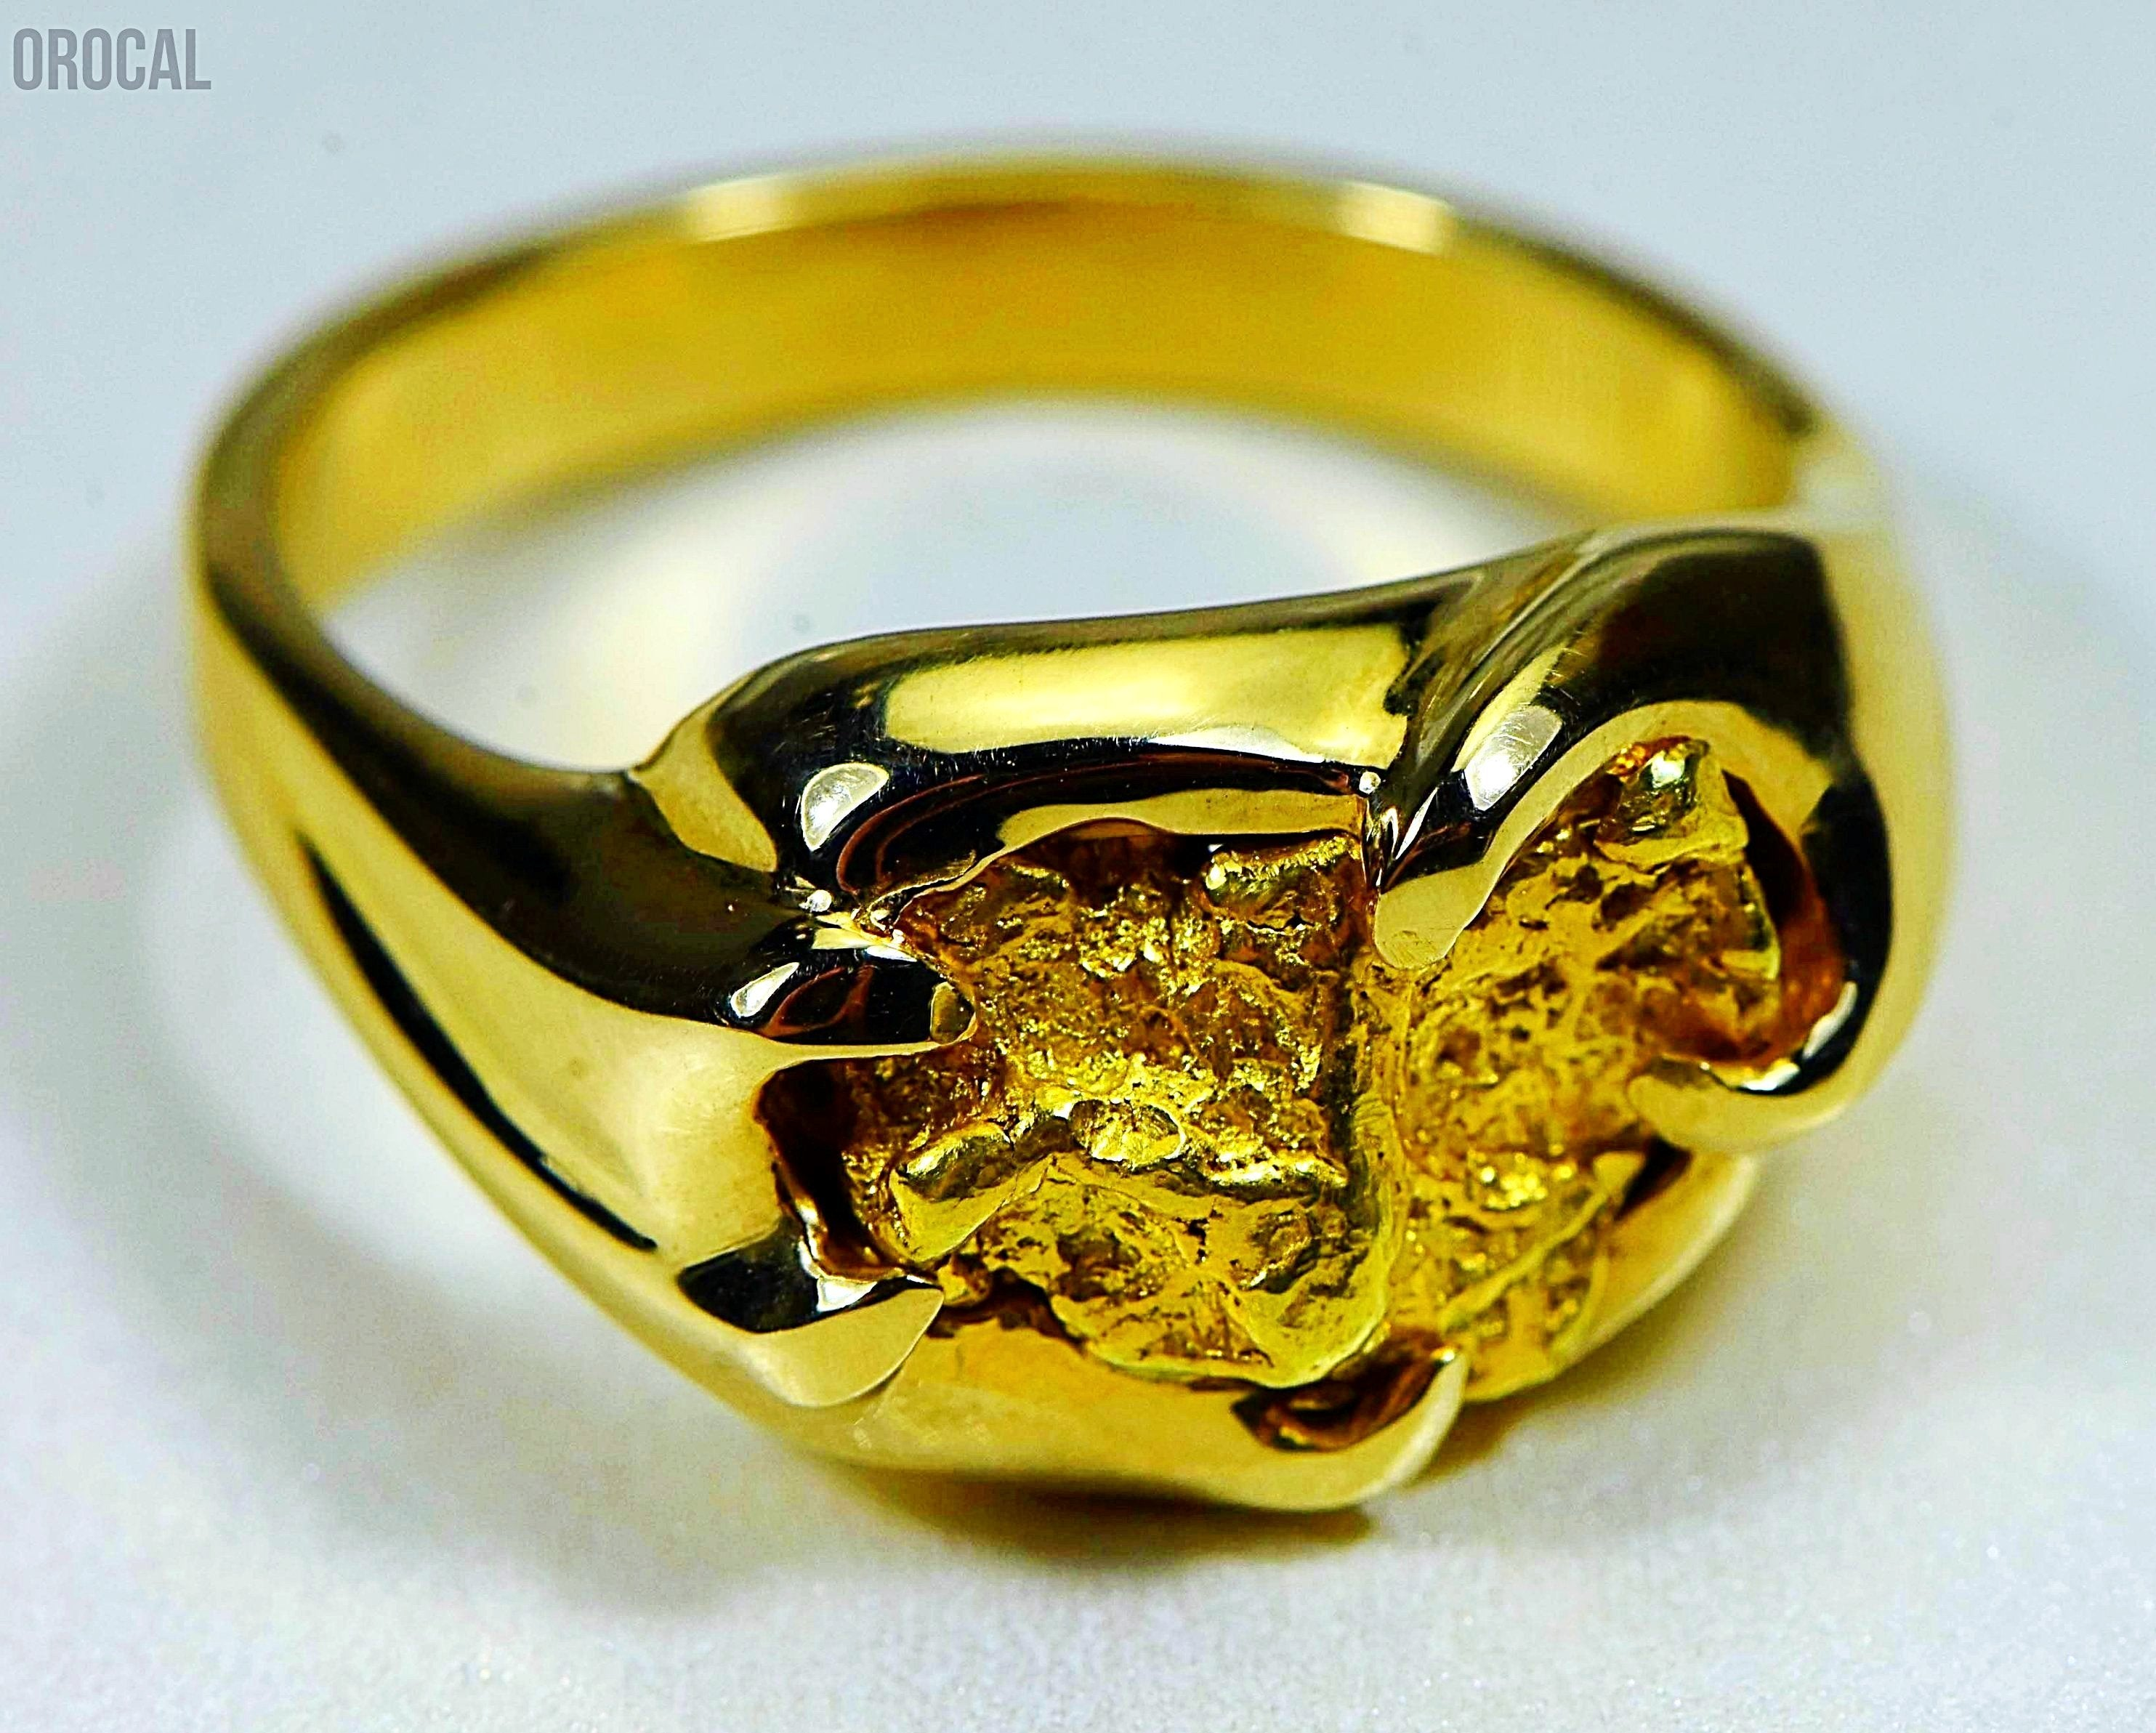 "Gold Nugget Men's Ring ""Orocal"" RMEN120 Genuine Hand Crafted Jewelry - 14K Casting - Liquidbullion"